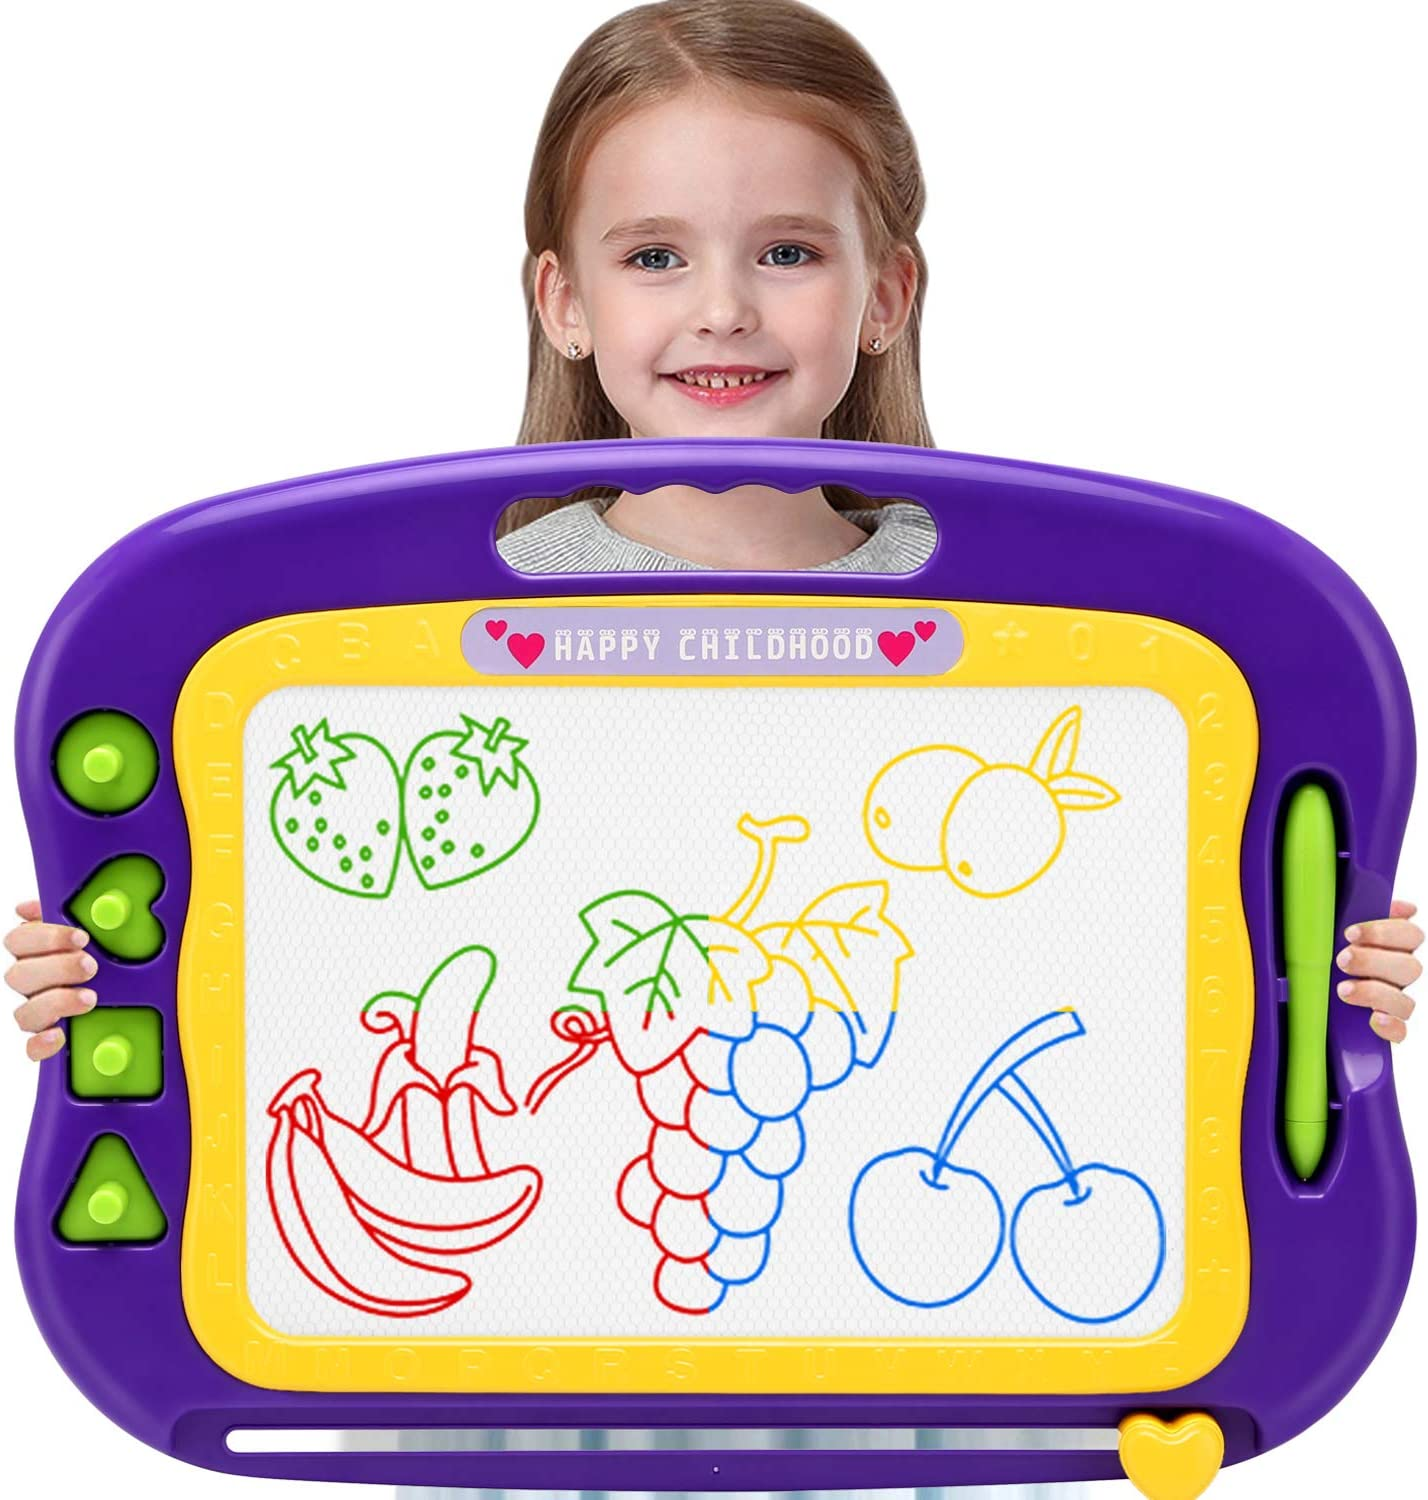 Wellchild Magnetic Drawing Board,Toddler Toys for Girls Boys 3 4 5 6 7 Year Old Gifts,Magnetic Doodle Board for Kids